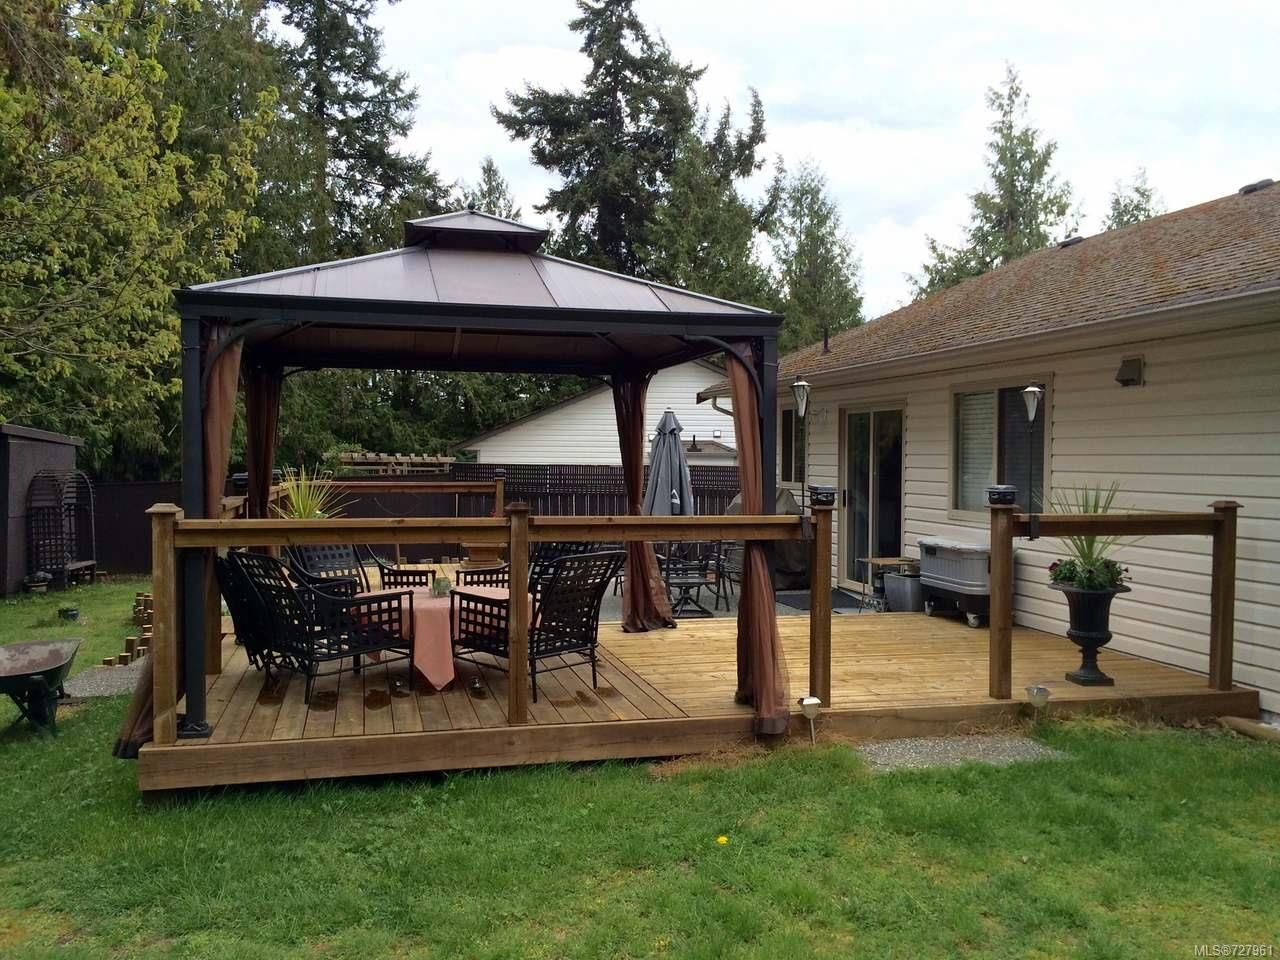 Photo 15: Photos: 1433 SUNRISE DRIVE in FRENCH CREEK: PQ French Creek House for sale (Parksville/Qualicum)  : MLS®# 727961